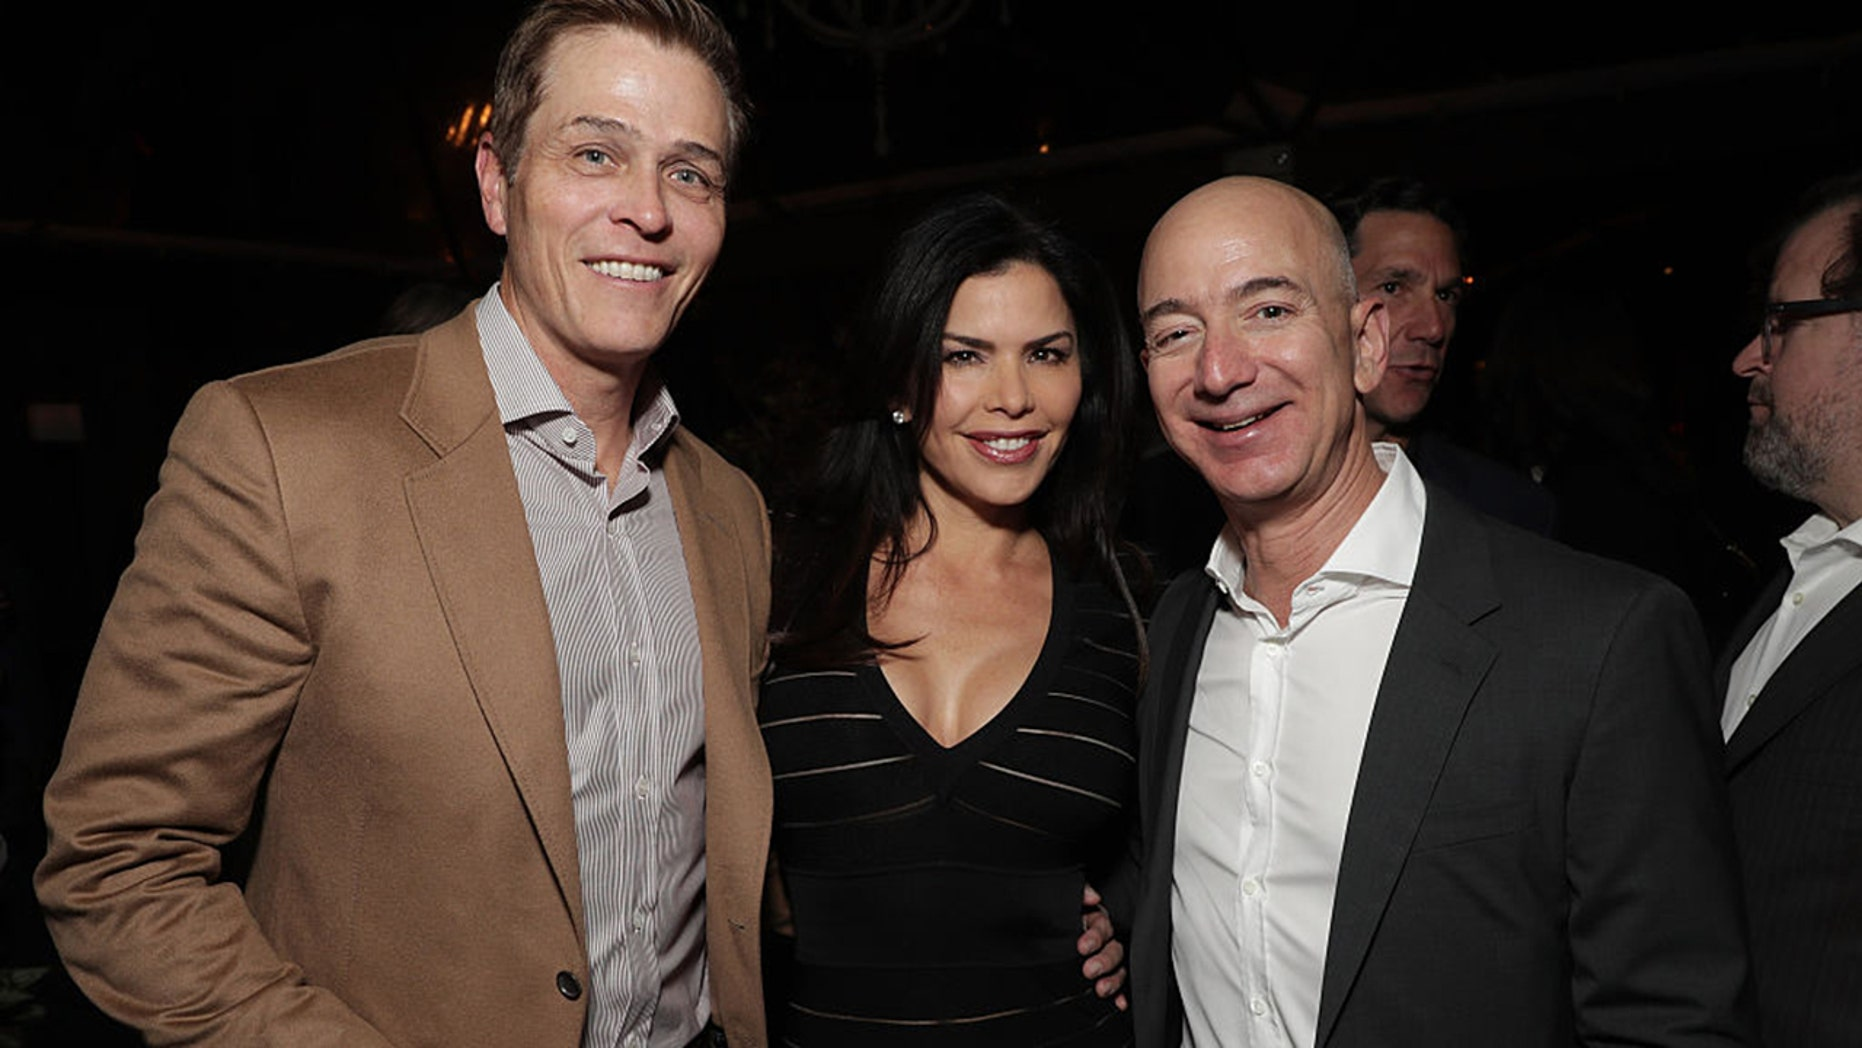 Amazon's Jeff Bezos has no prenup, $67B on the line